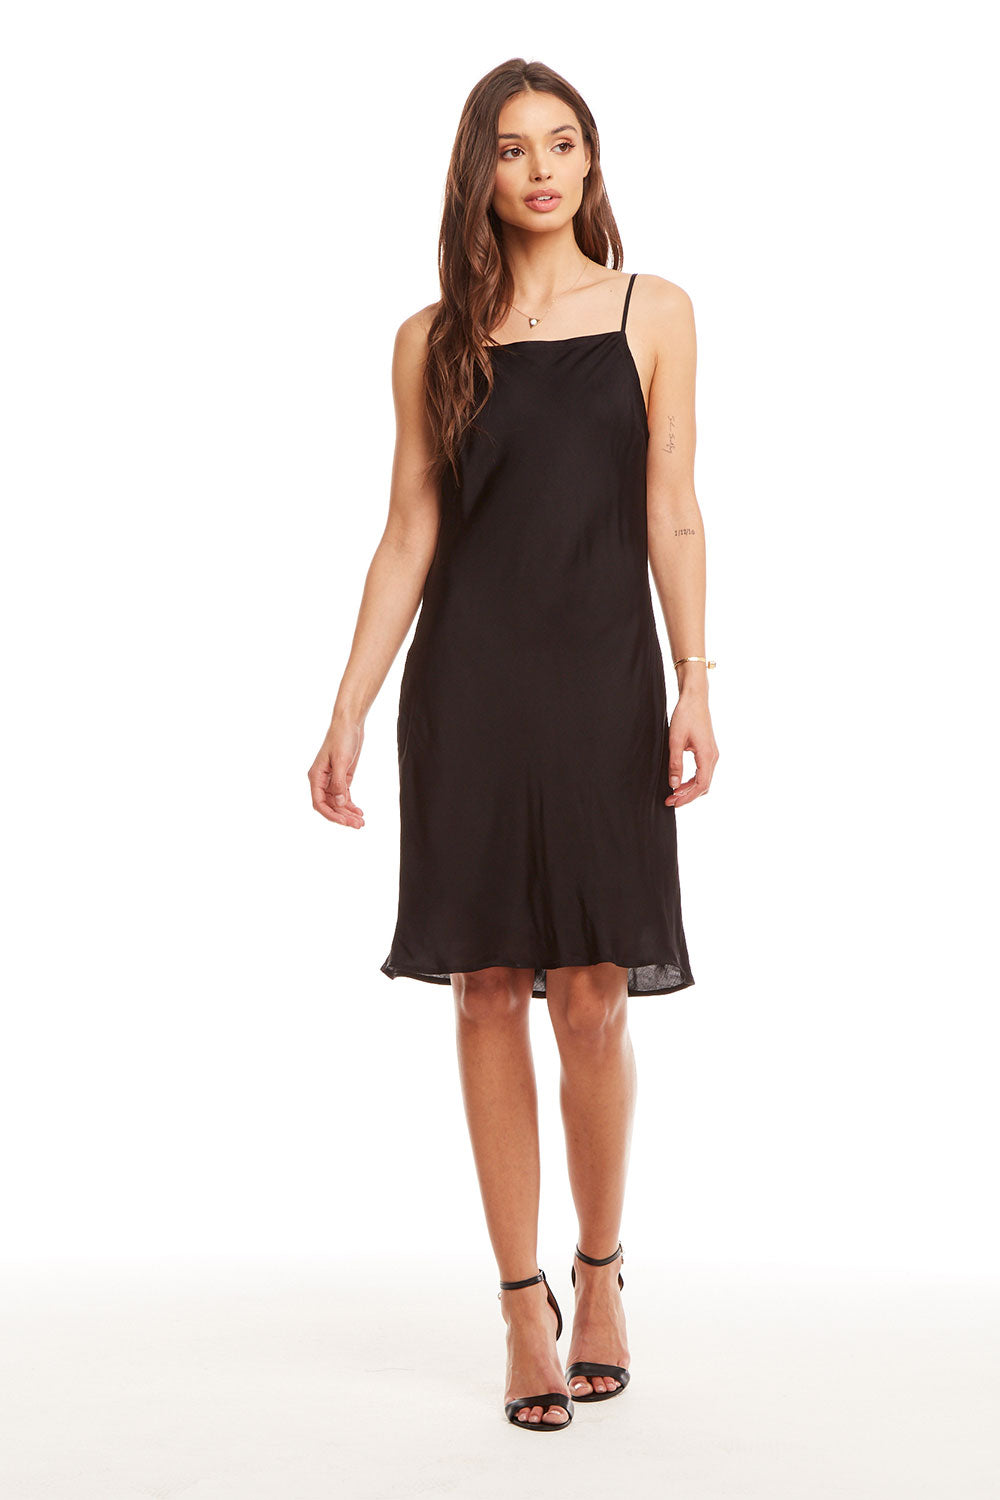 Silky Basics Deep Scoop Back Midi Slip Dress WOMENS chaserbrand4.myshopify.com